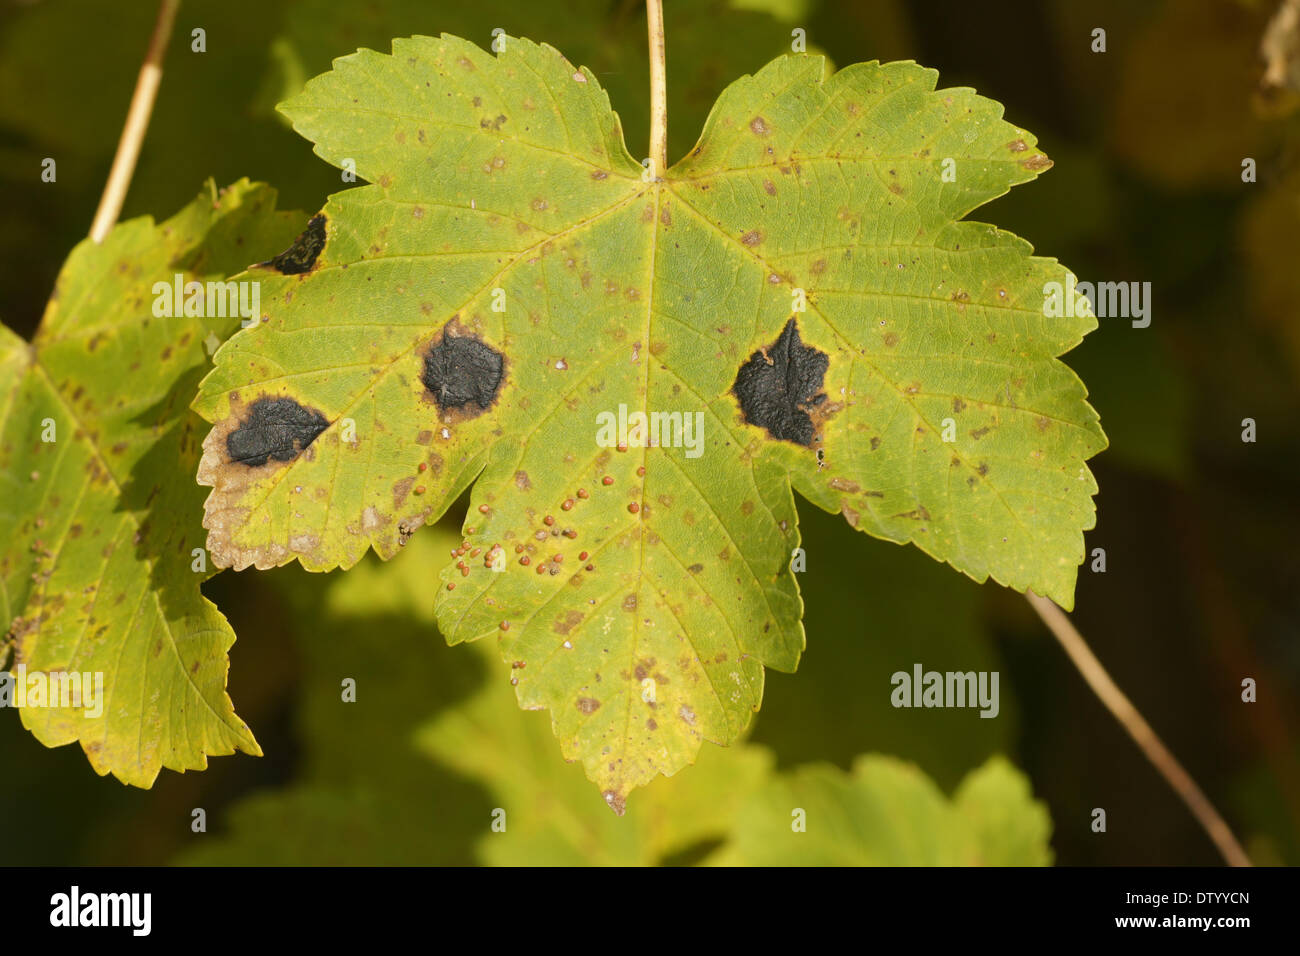 Tar spot on sycamore maple leaf - Stock Image